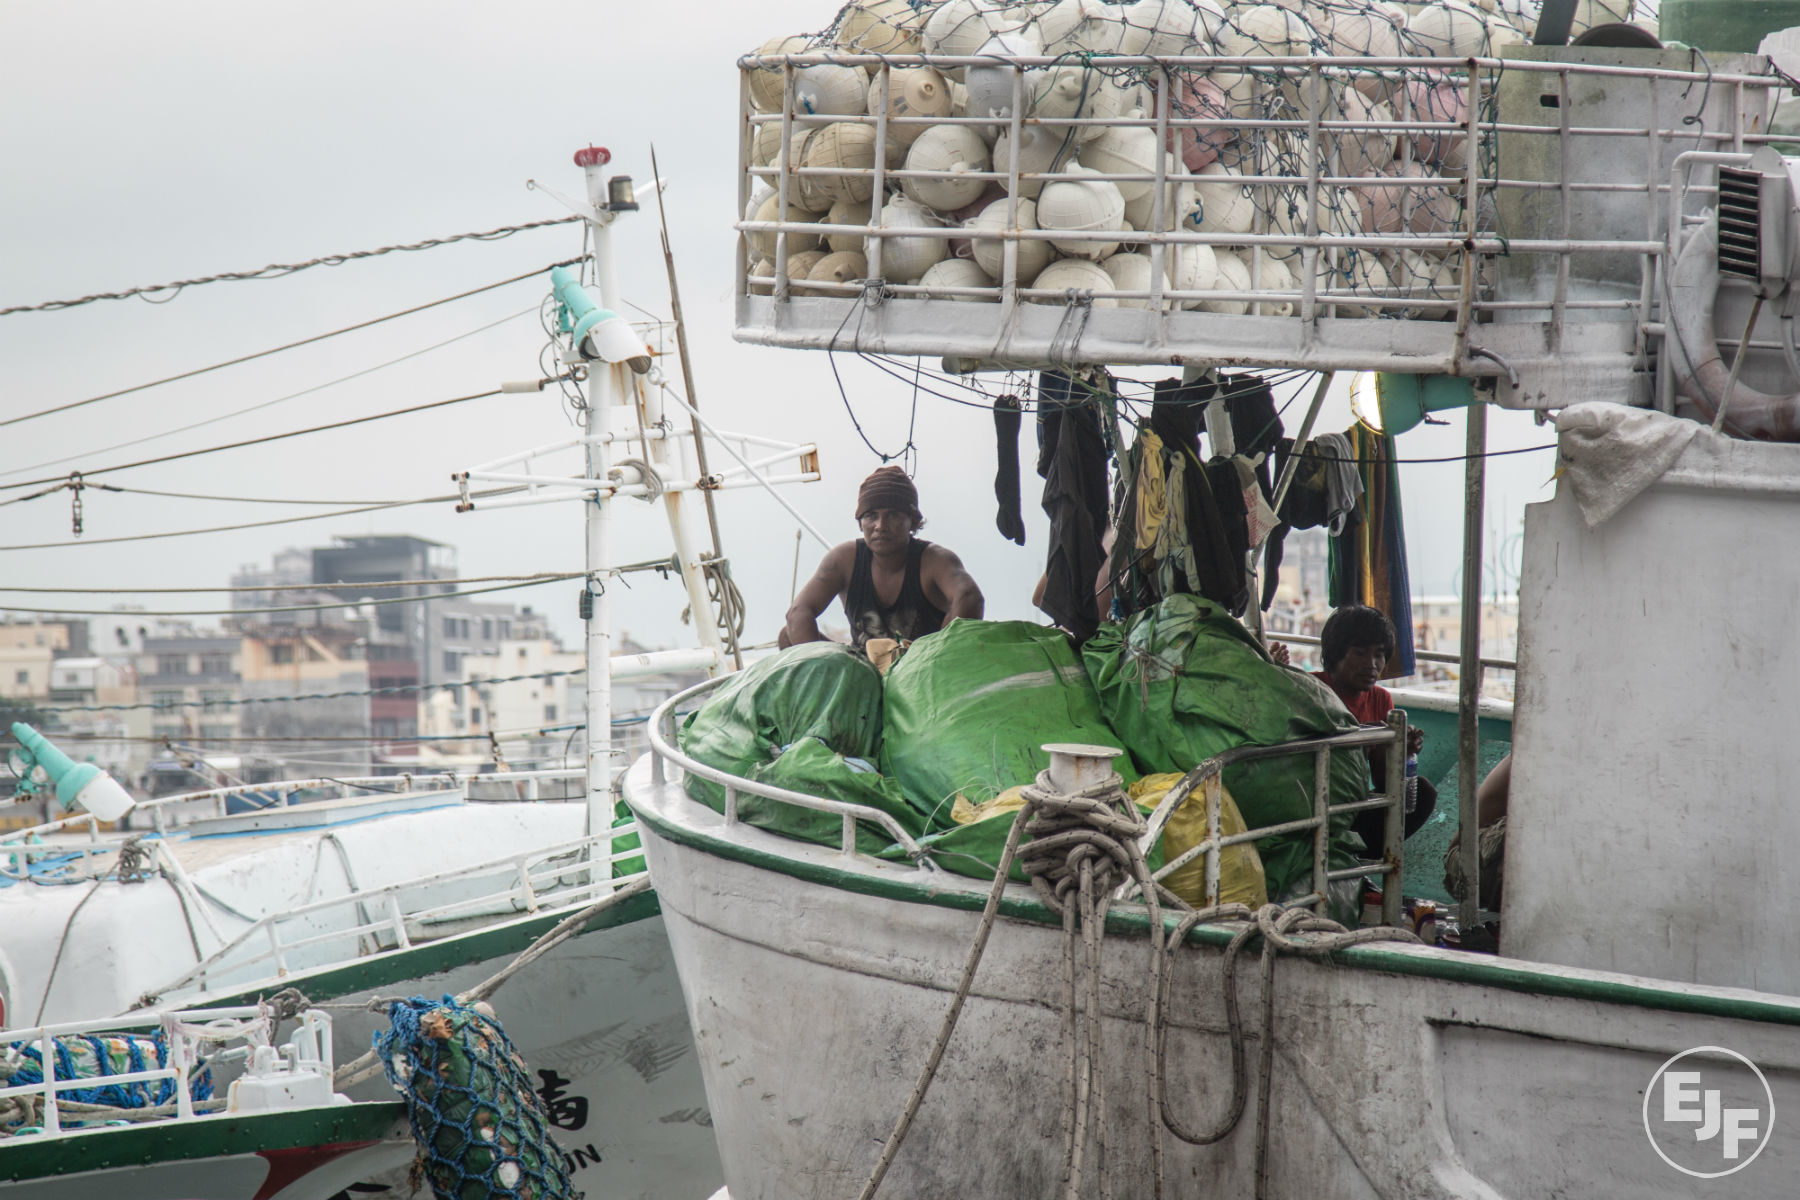 EJF documentary reveals shocking extent of human rights abuses in Taiwan Fisheries